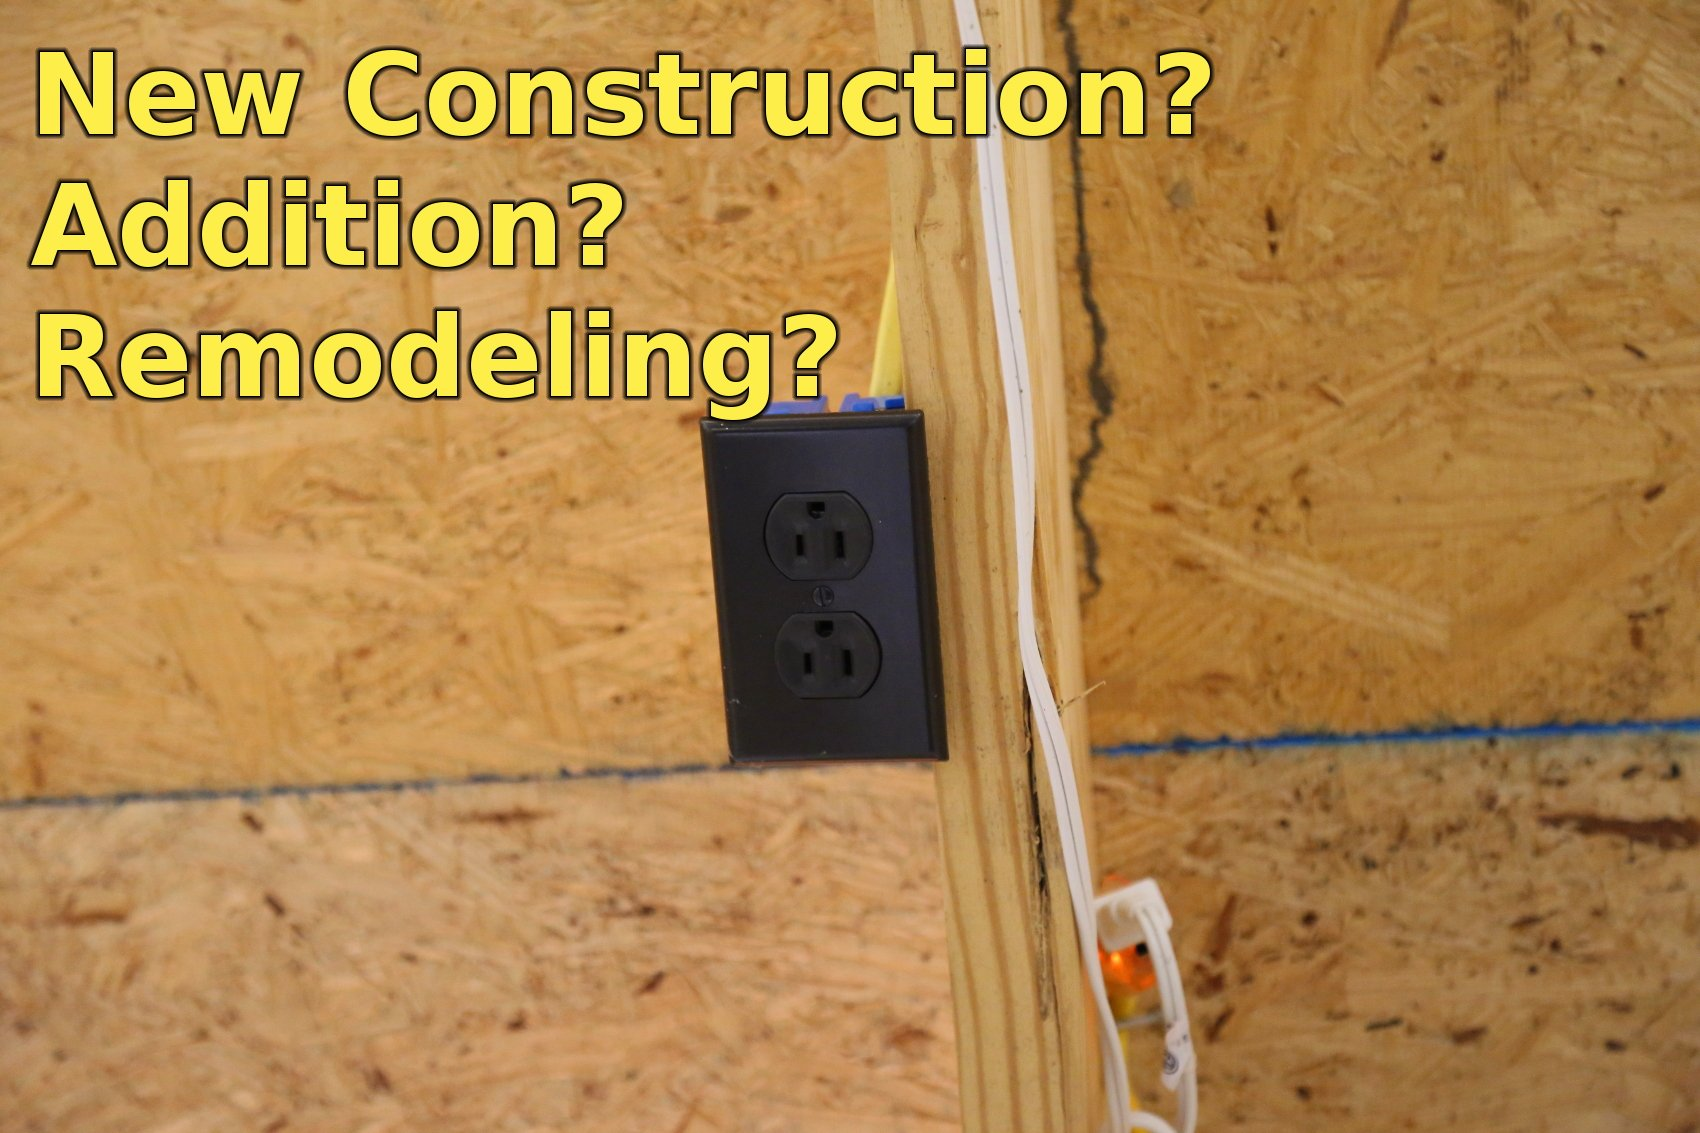 Crofton Electrician for Construction, Remodel, Home Addition